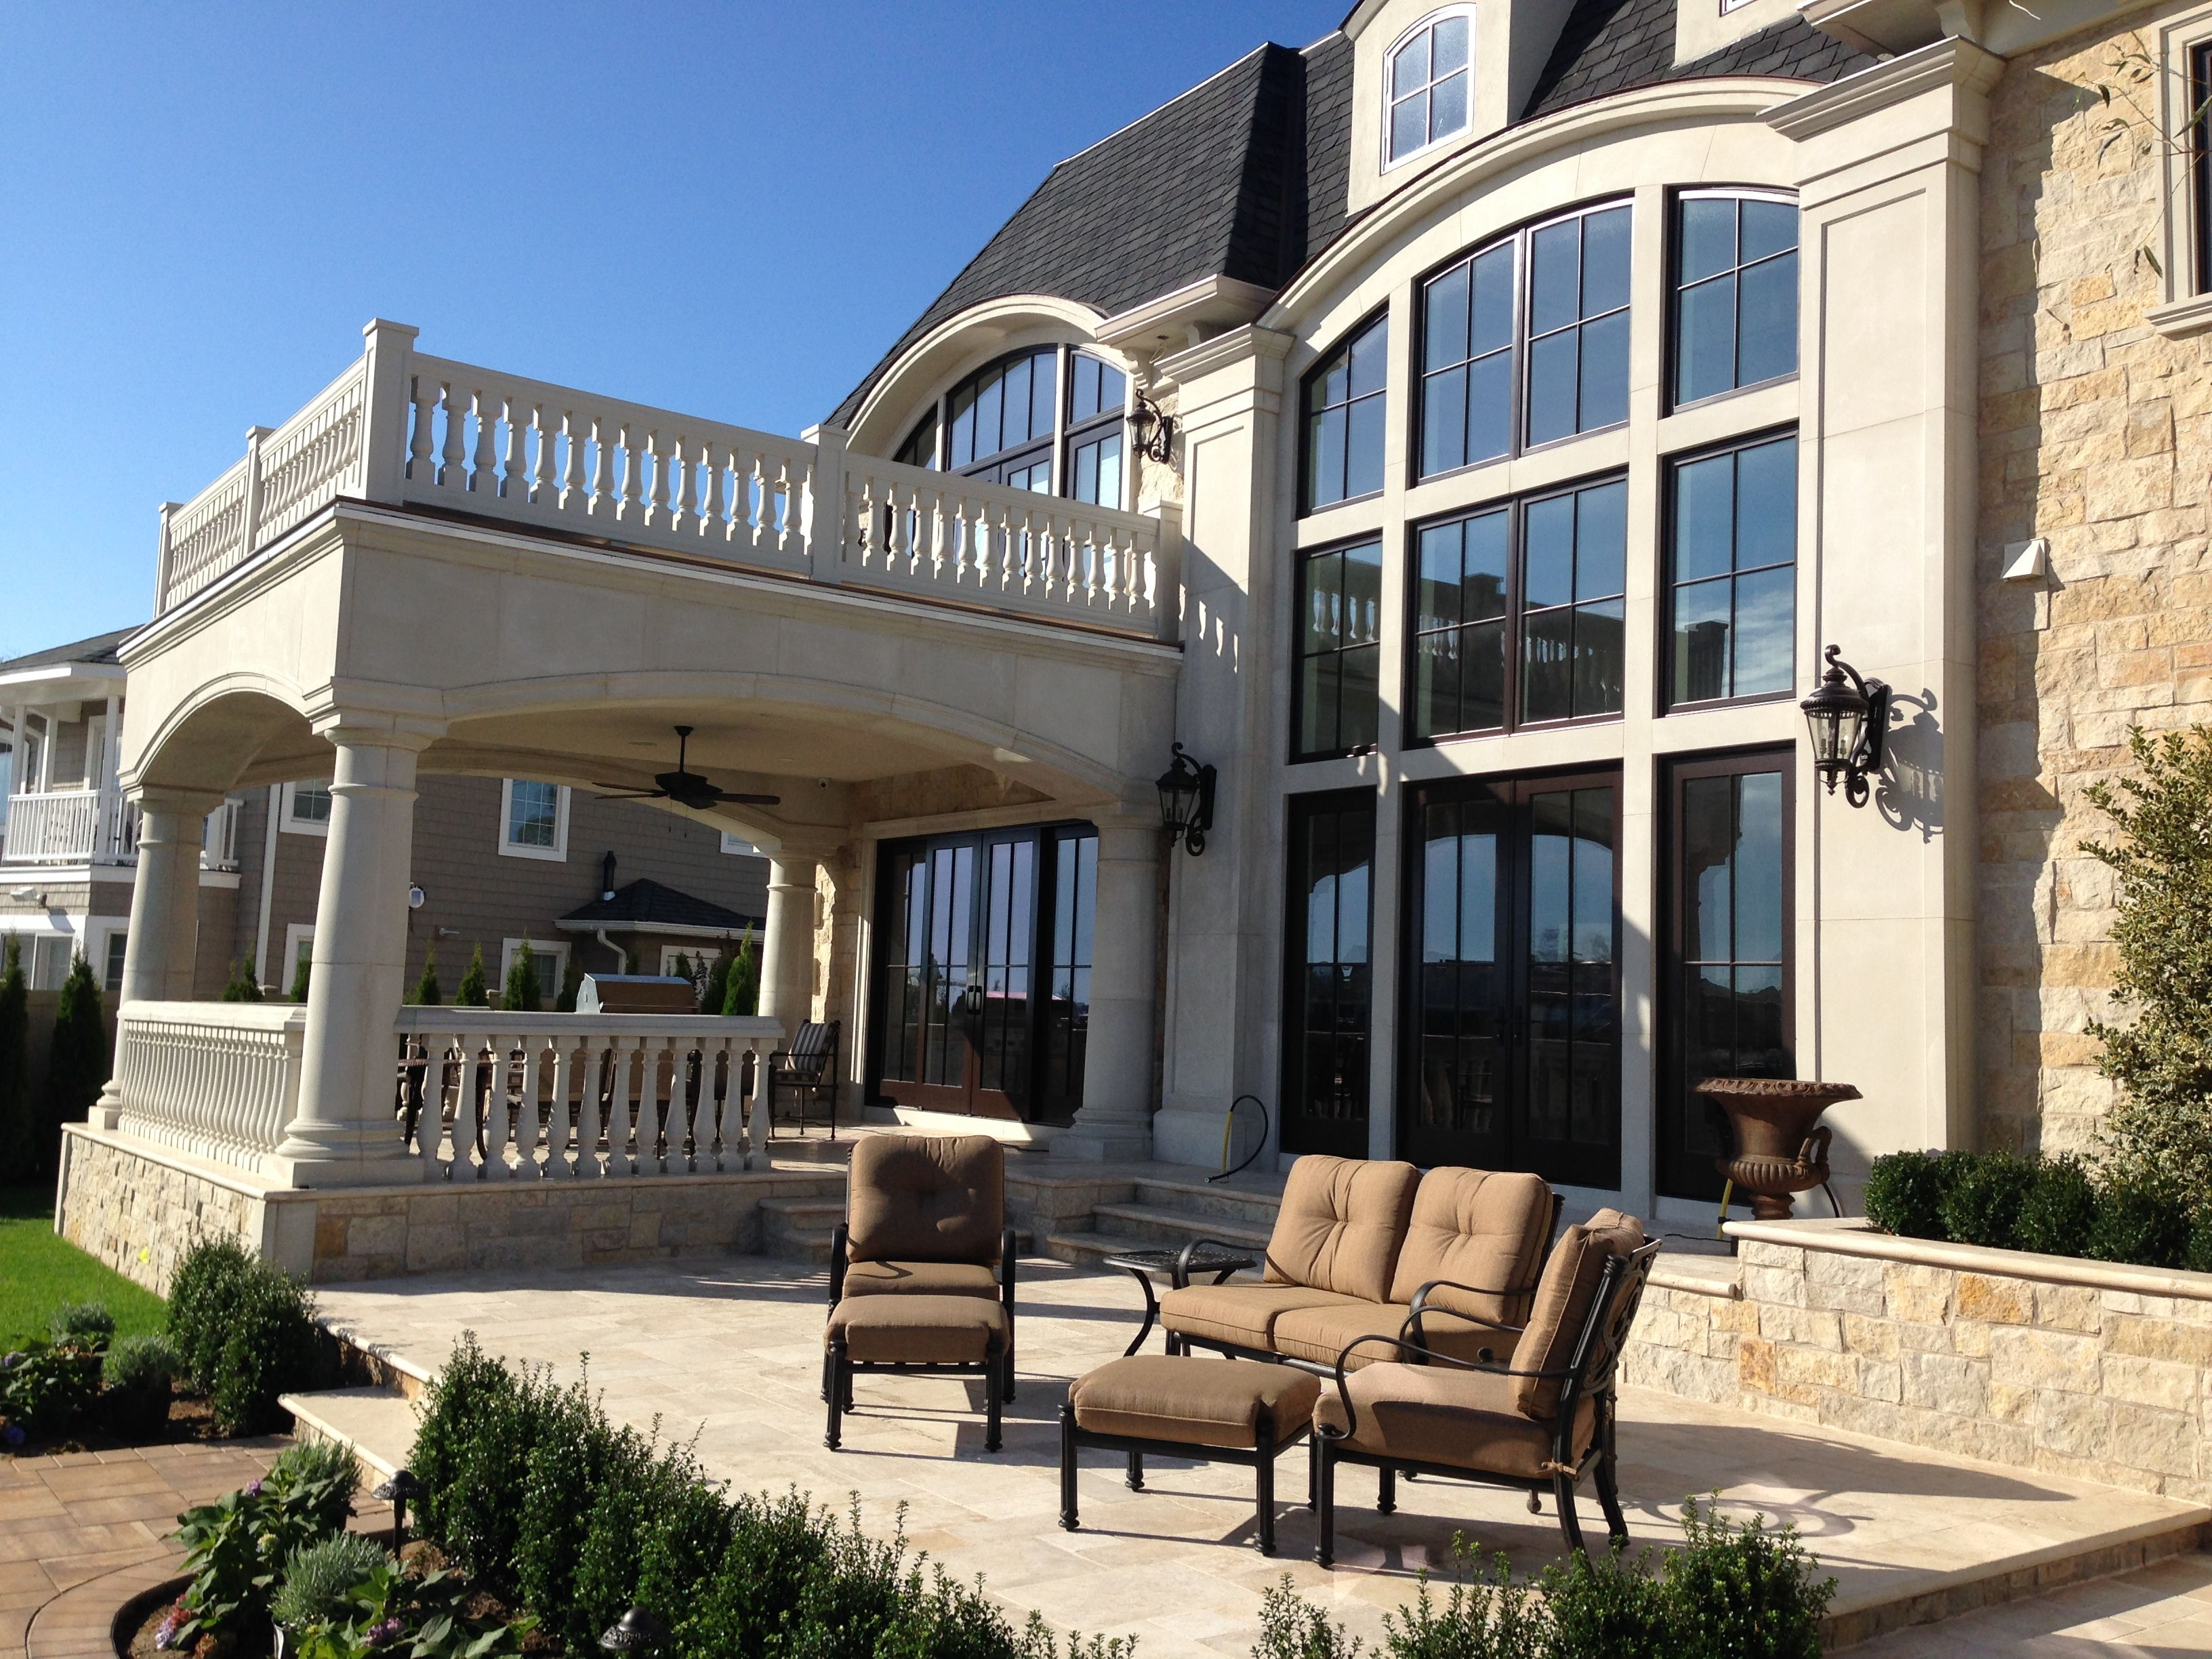 Beautiful House Using Precast Concrete. Products Installed Are Balcony  Handrail, Patio Handrail, And